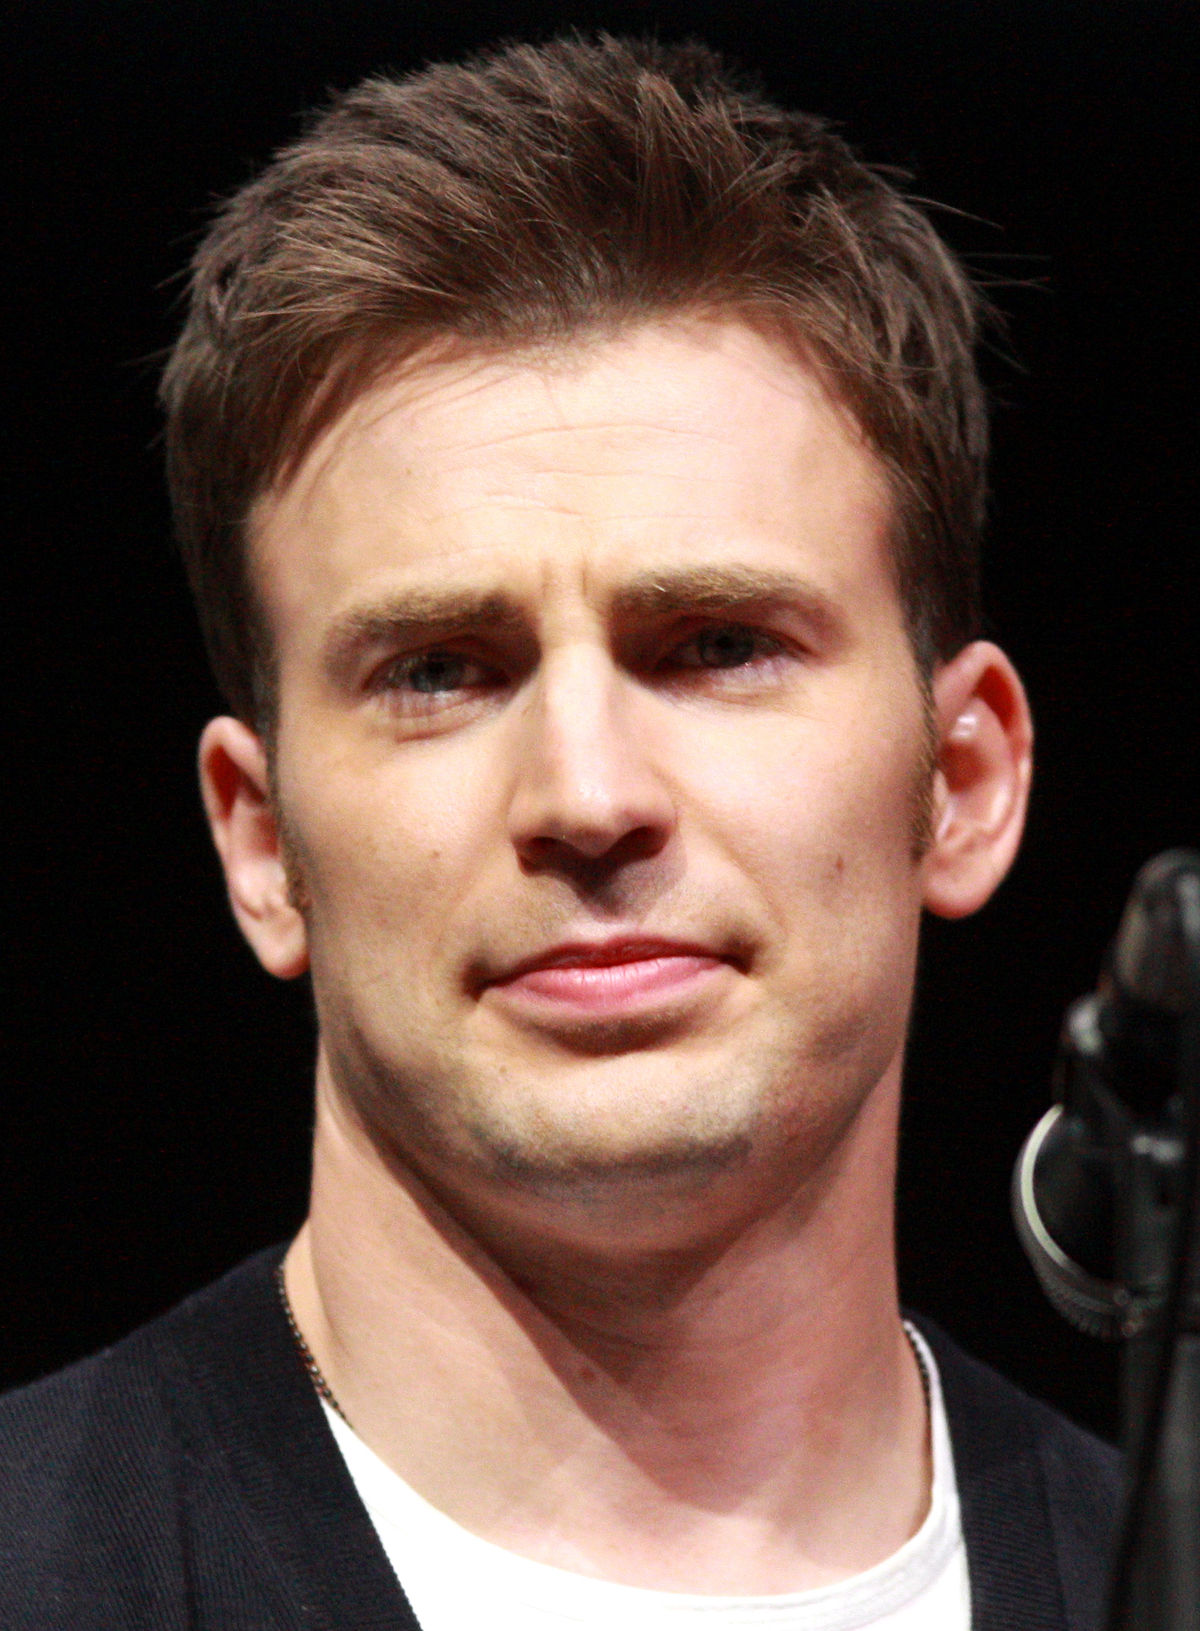 Image Result For Chris Evans Actor Wikipedia